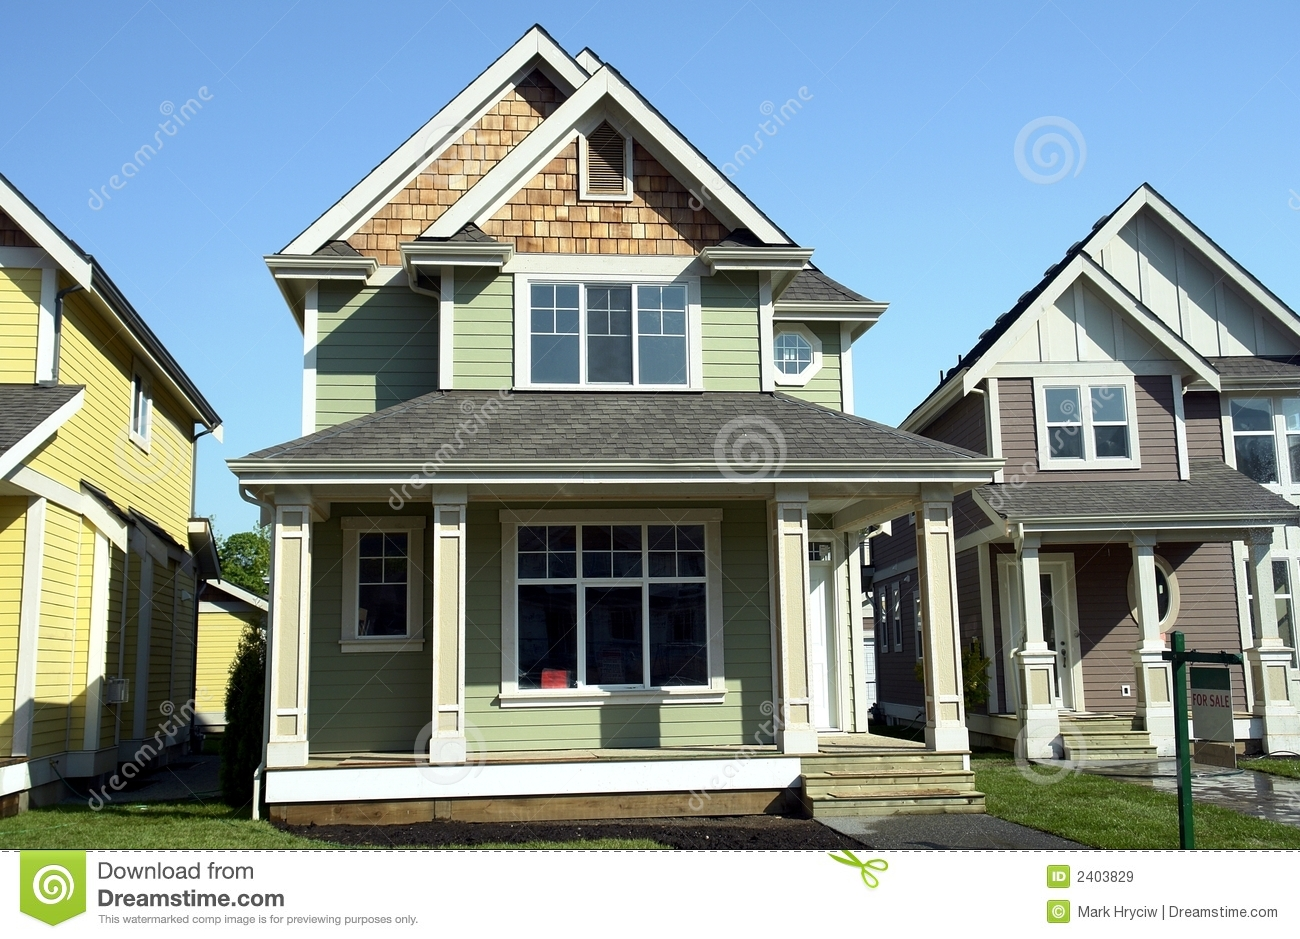 New homes for sale royalty free stock images image 2403829 for New homes for sale